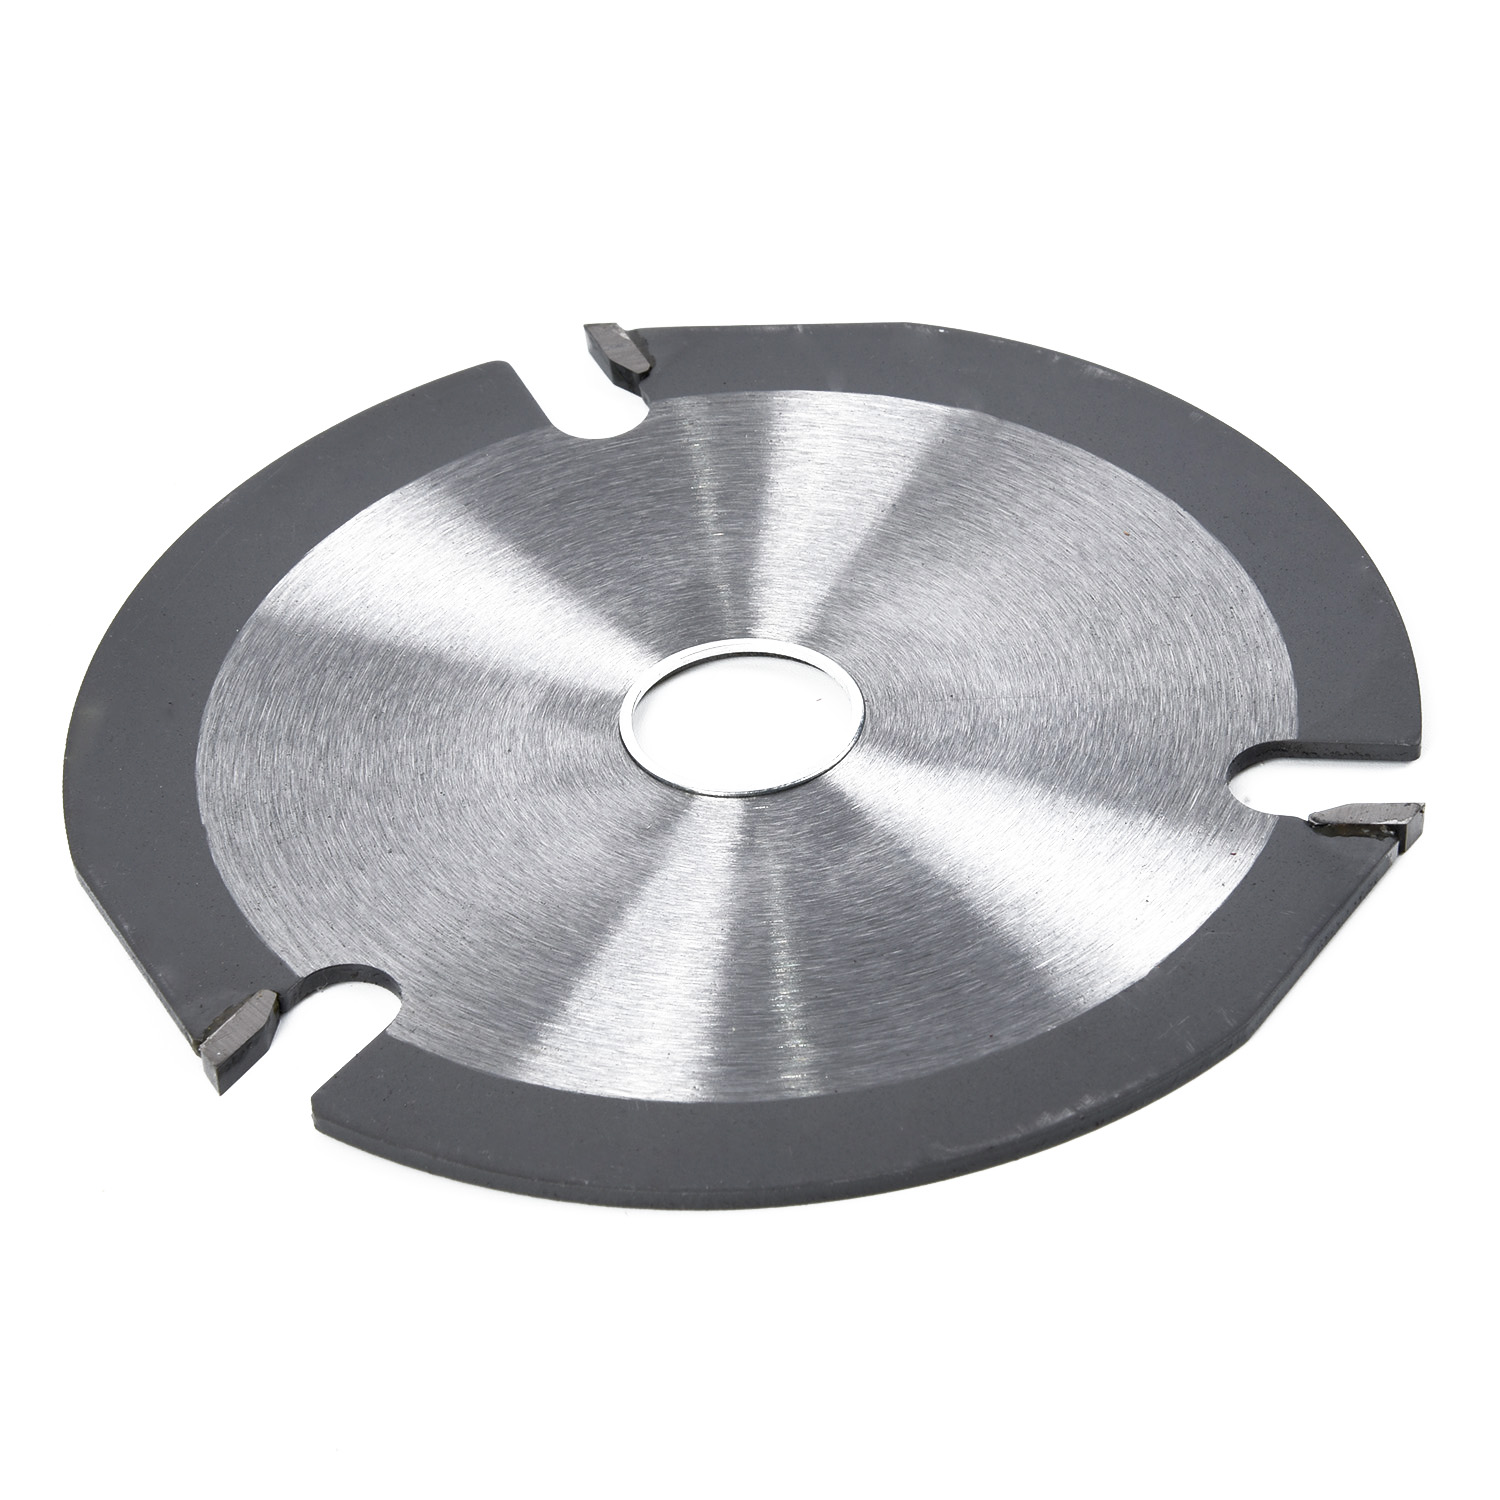 Circular Multitool Grinder Saw Disc Cutting Disc Wheel DIY Supplies Woodworking